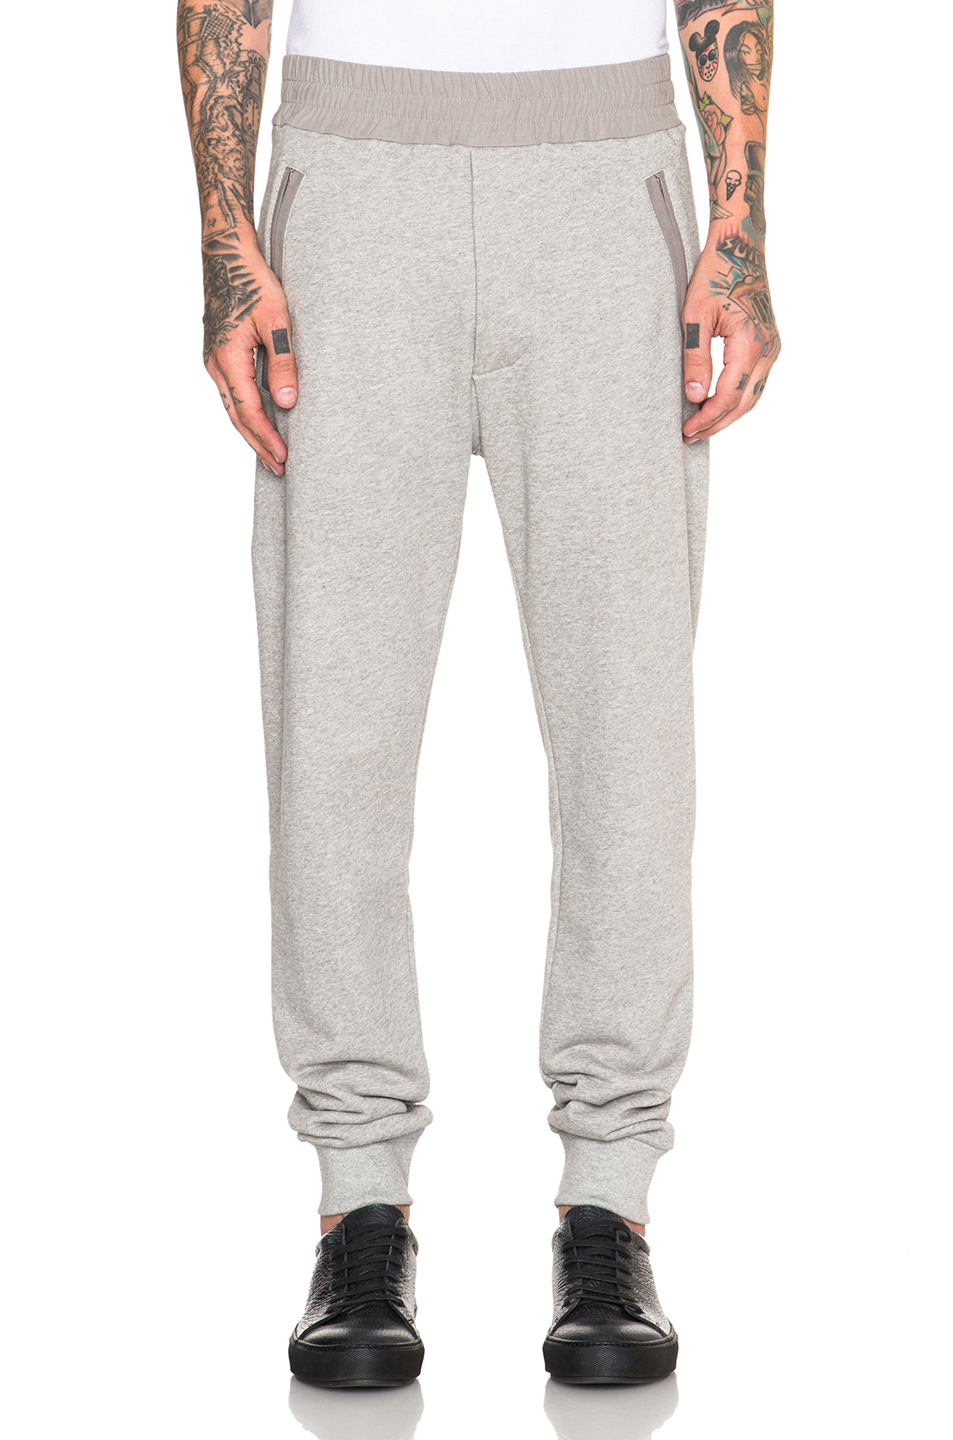 Acne Studios Johna Sweatpants in Gray